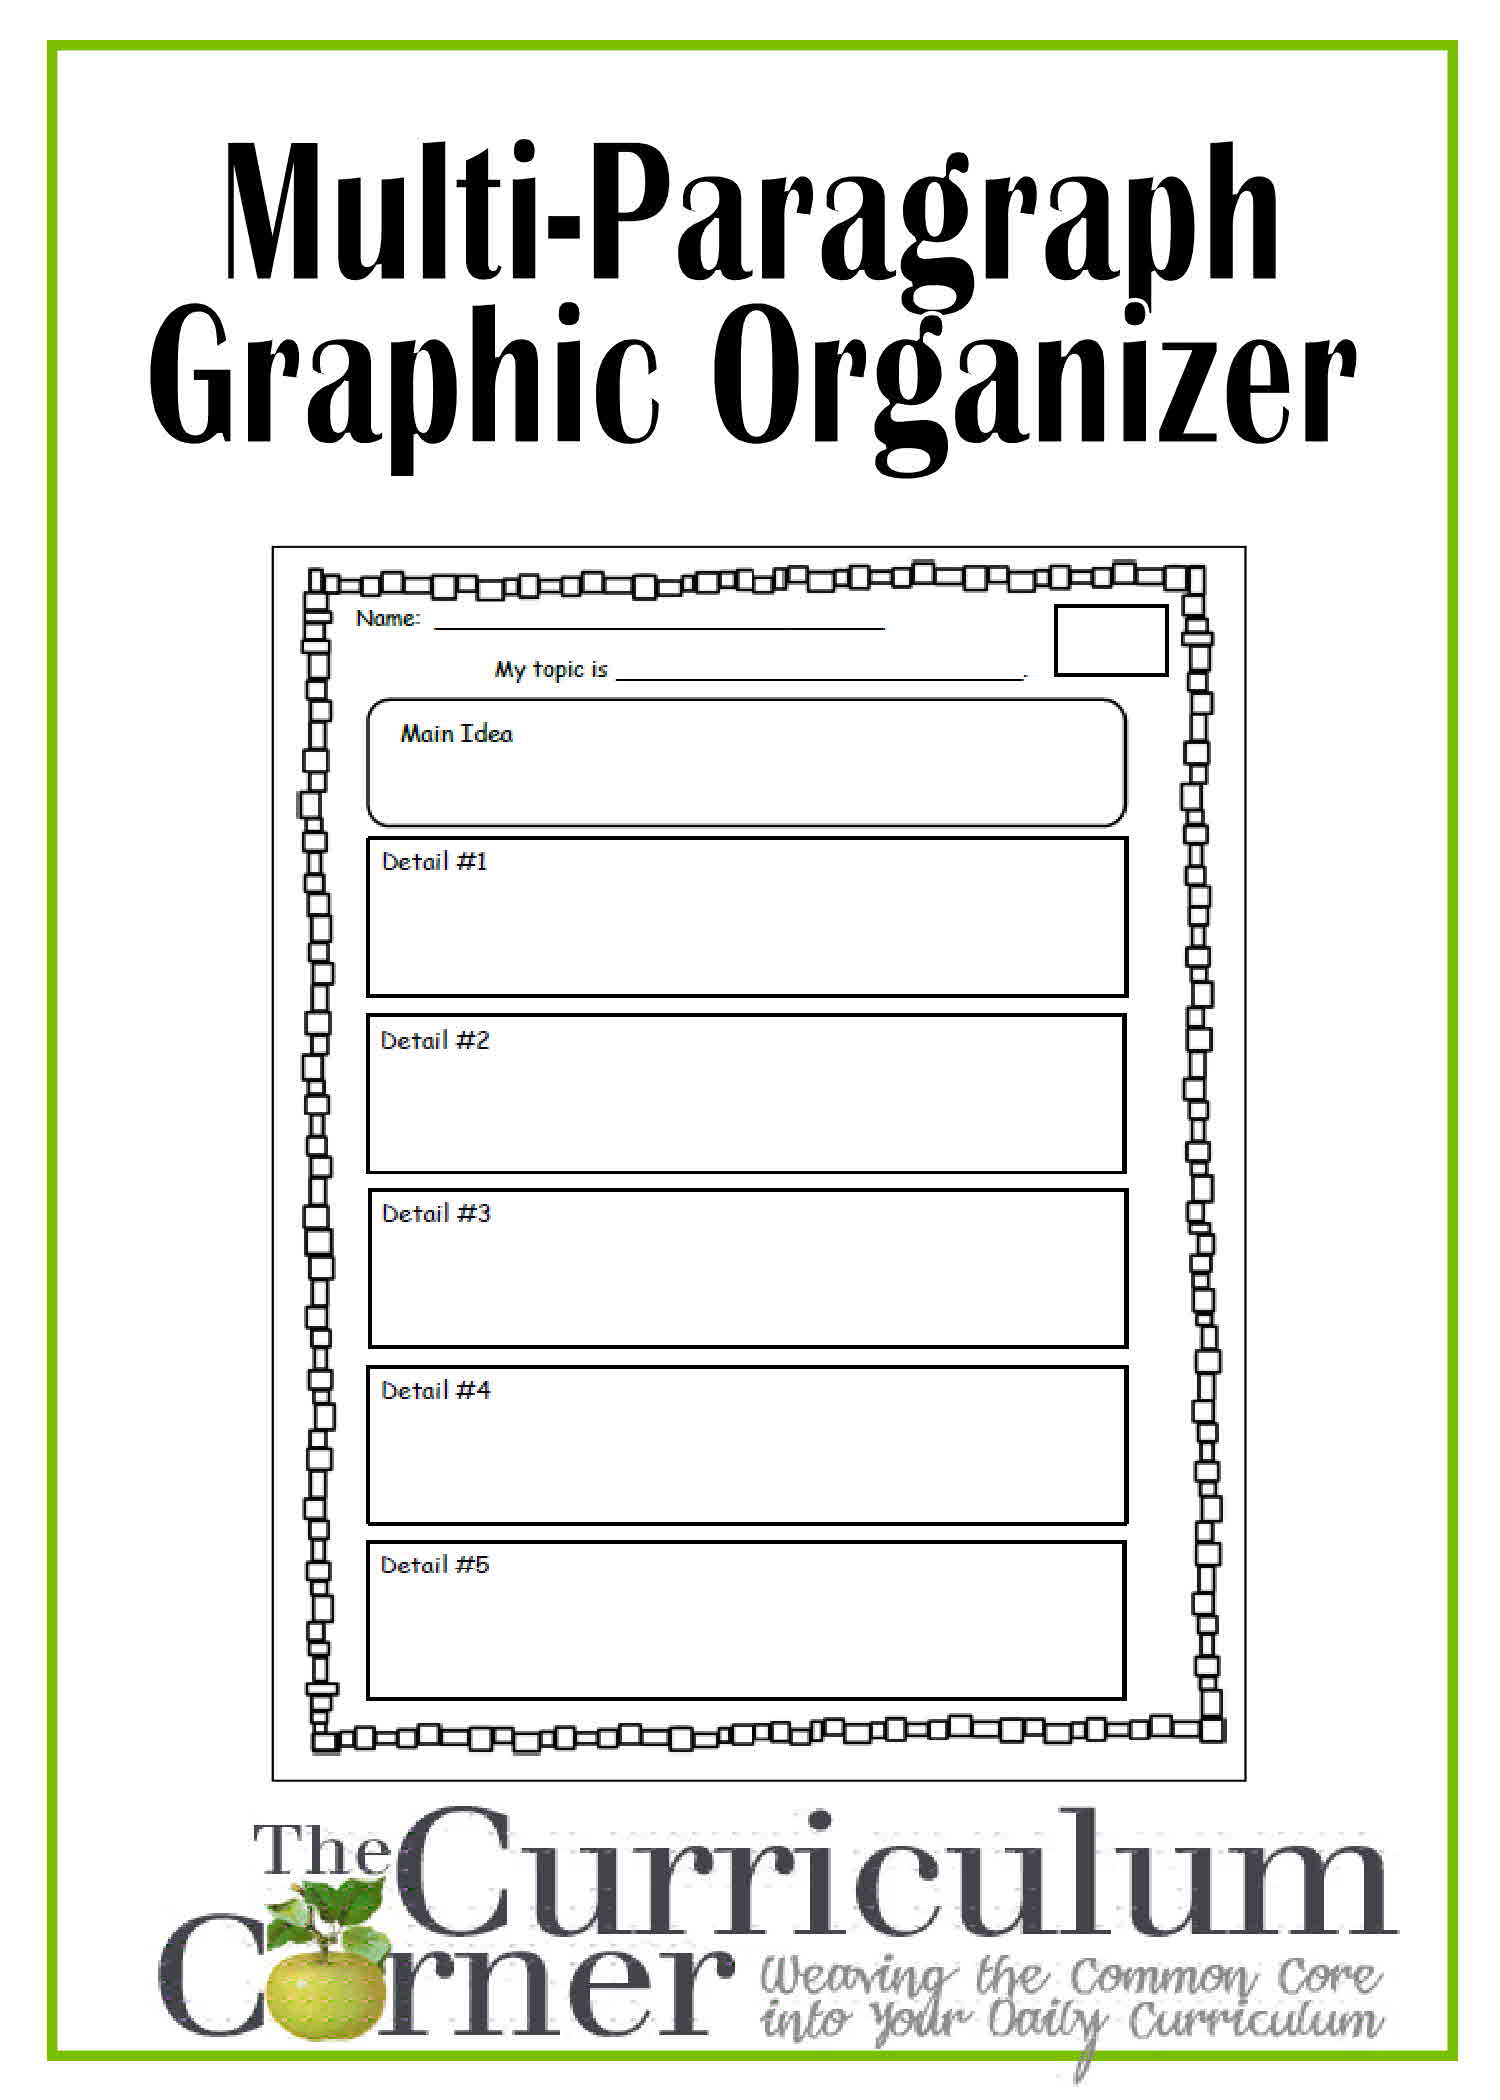 018 Graphic Organizer For Multi Paragraph Research Papers The Multipara Best Organizers Writing Essays Informative Argumentative Literary Persuasive Free Descriptive Essay College Fascinating Informational Pdf 6th Grade Full